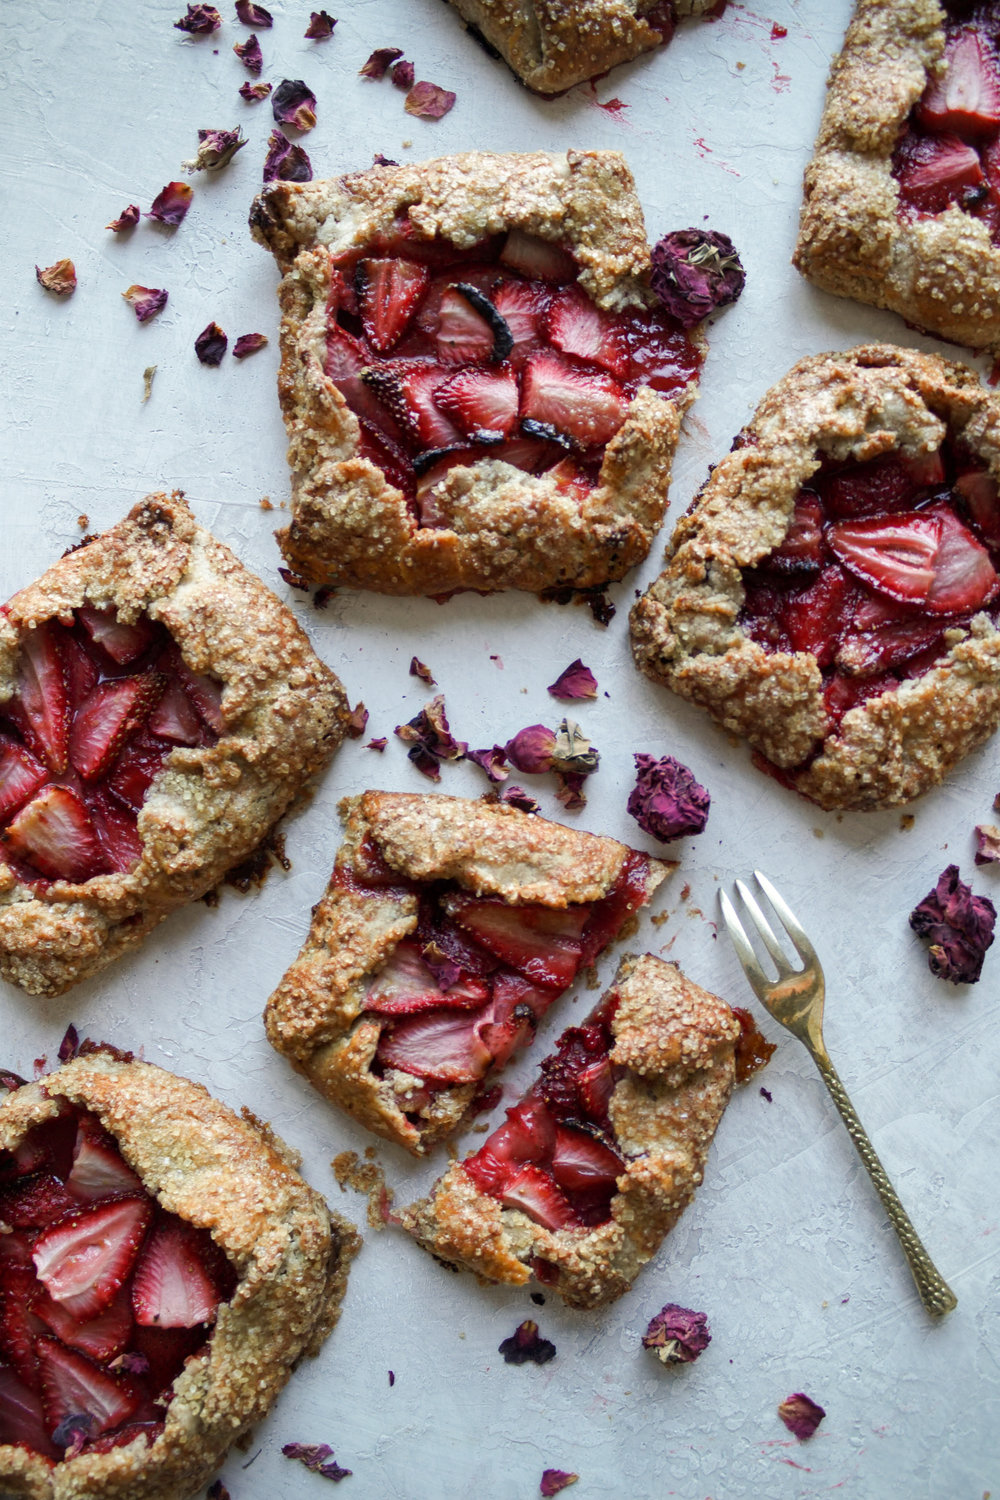 Strawberry and rose galettes 1.jpg